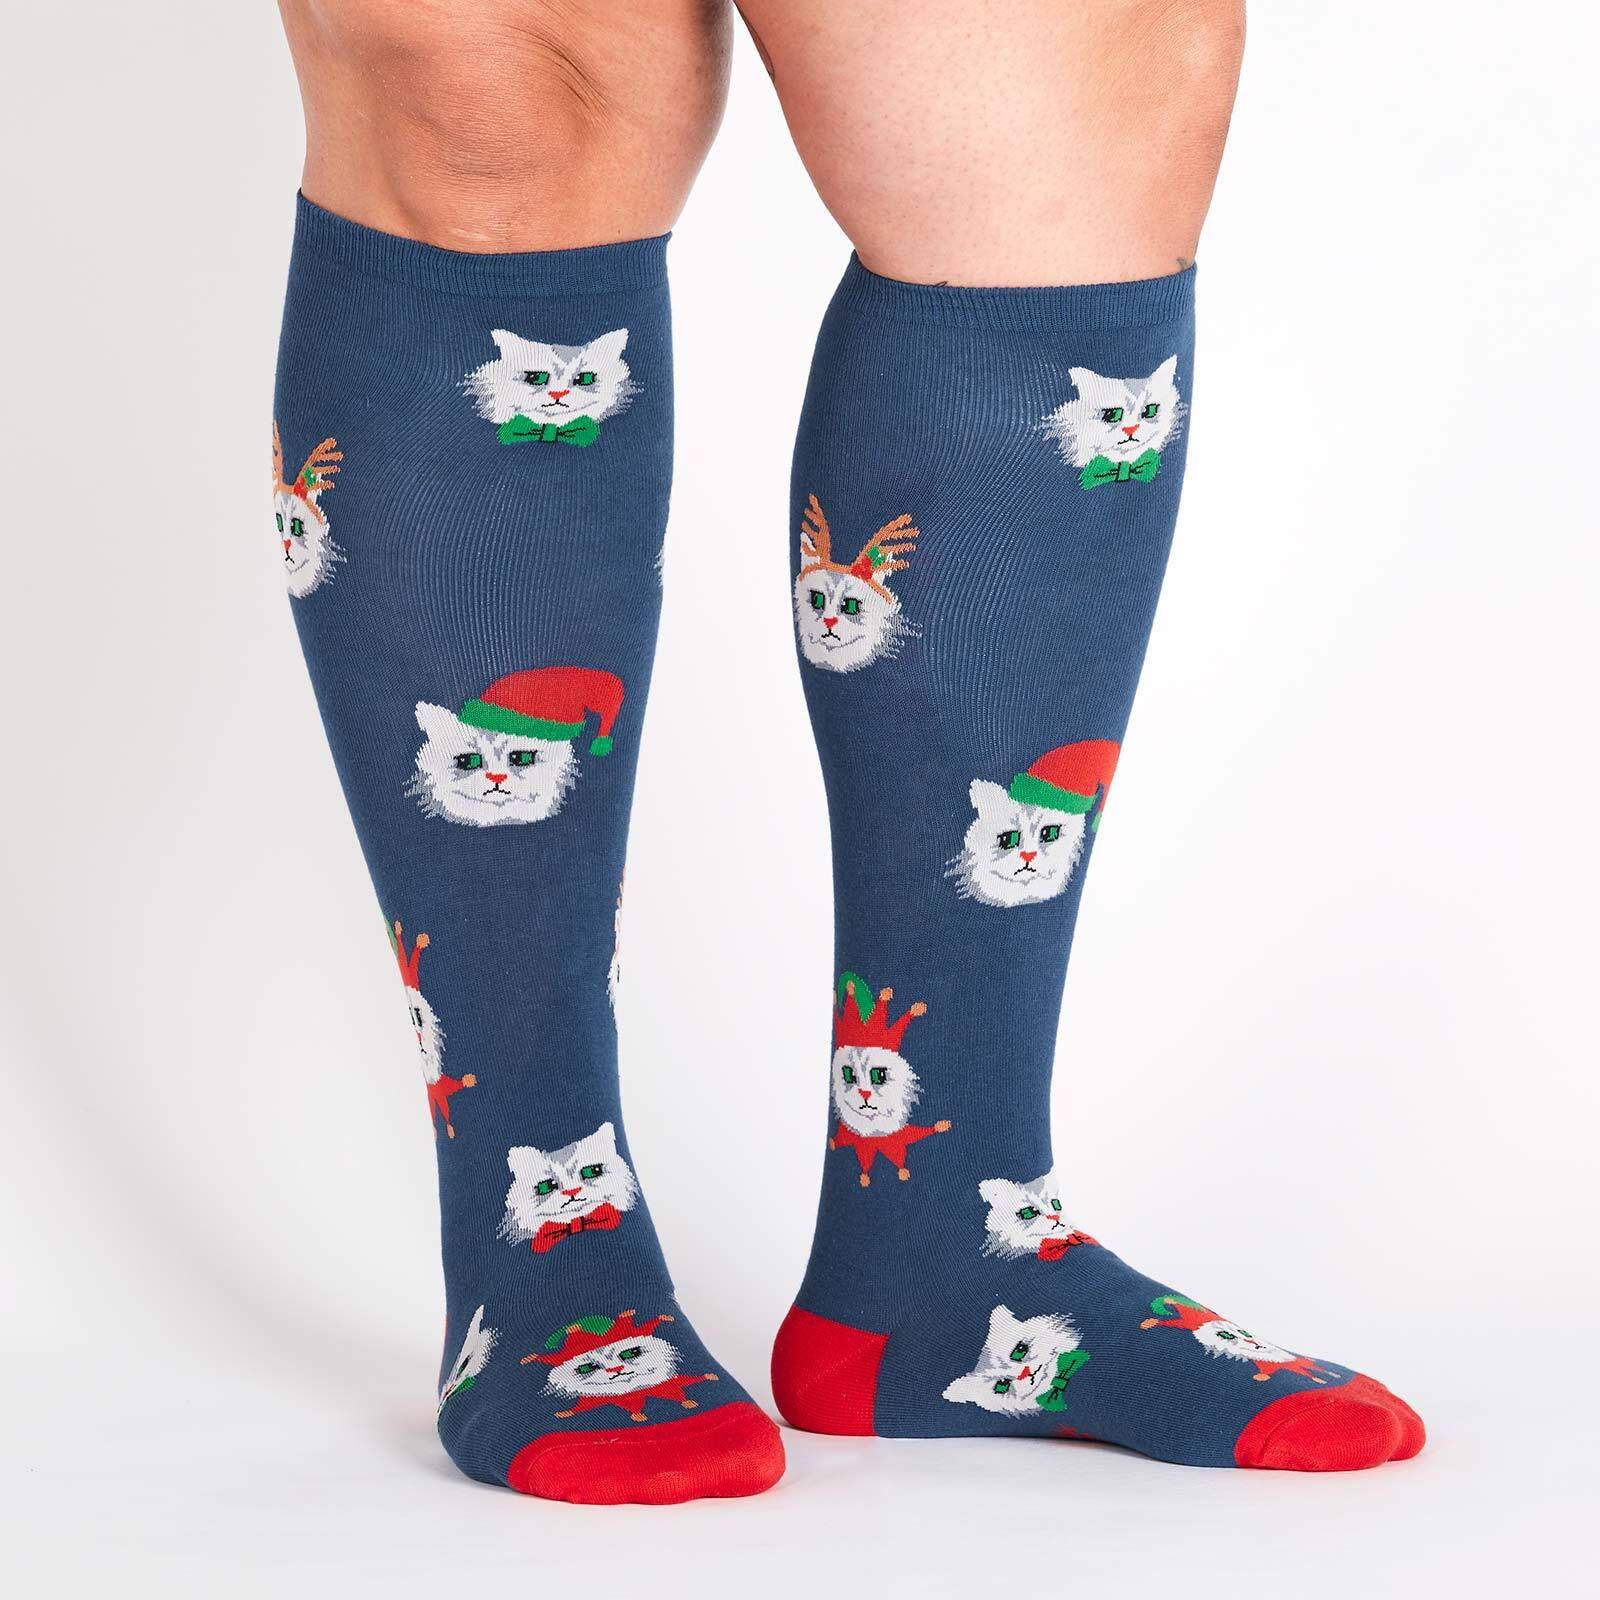 model wearing Santa Claws - Frowning Cats Dressed for Holiday Party Wide Calf Knee Socks Blue - Unisex